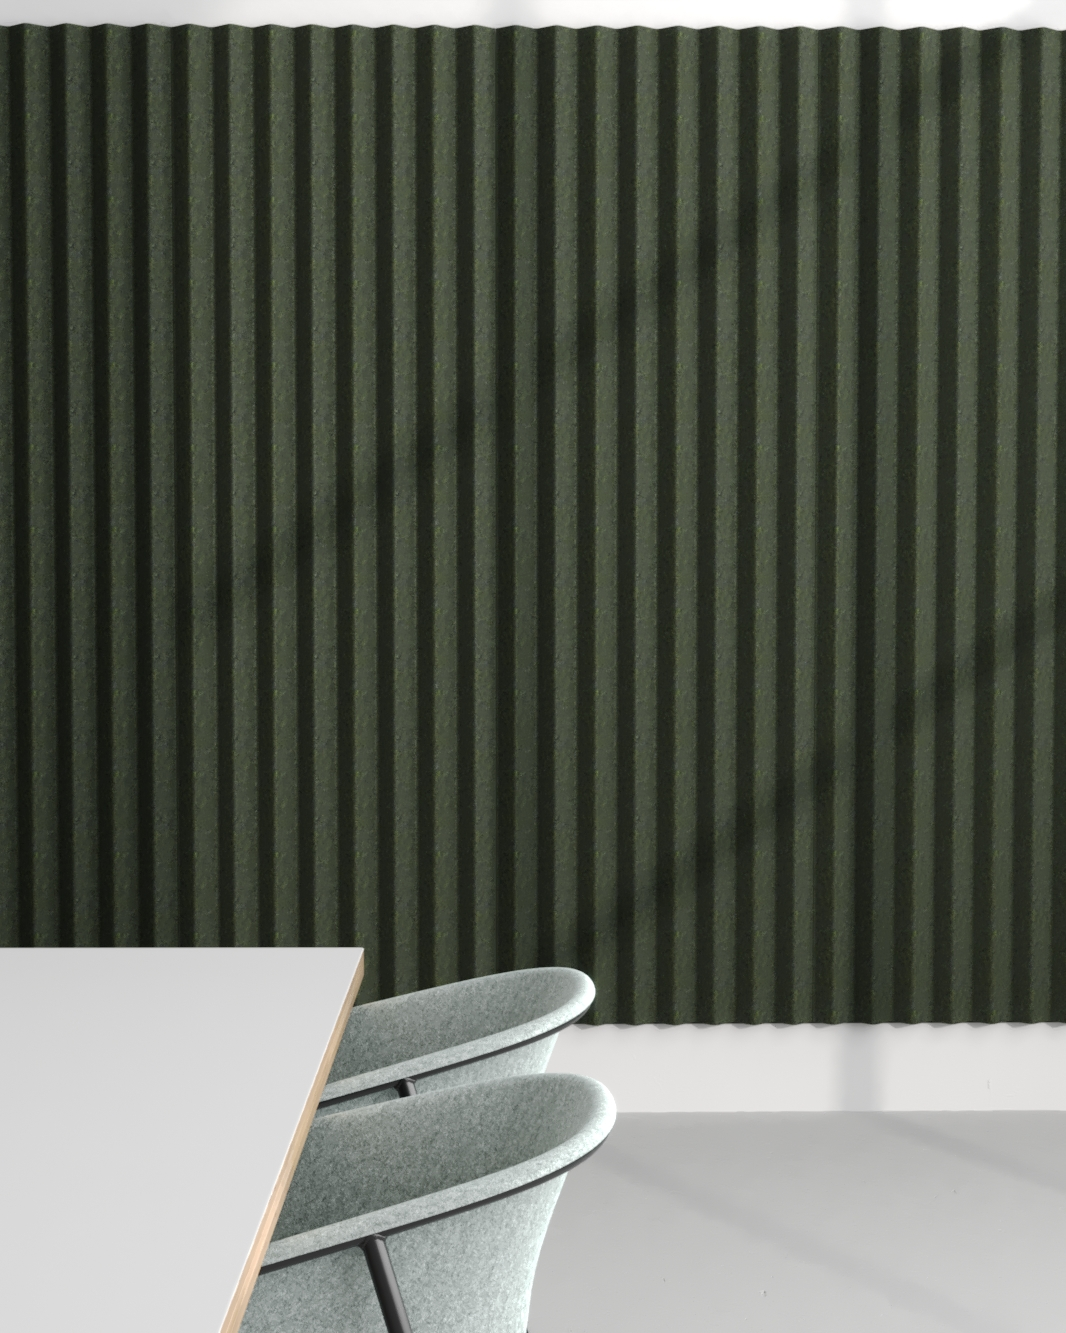 Mute - PET Felt Acoustic Panel, designed by meubel label De Vorm